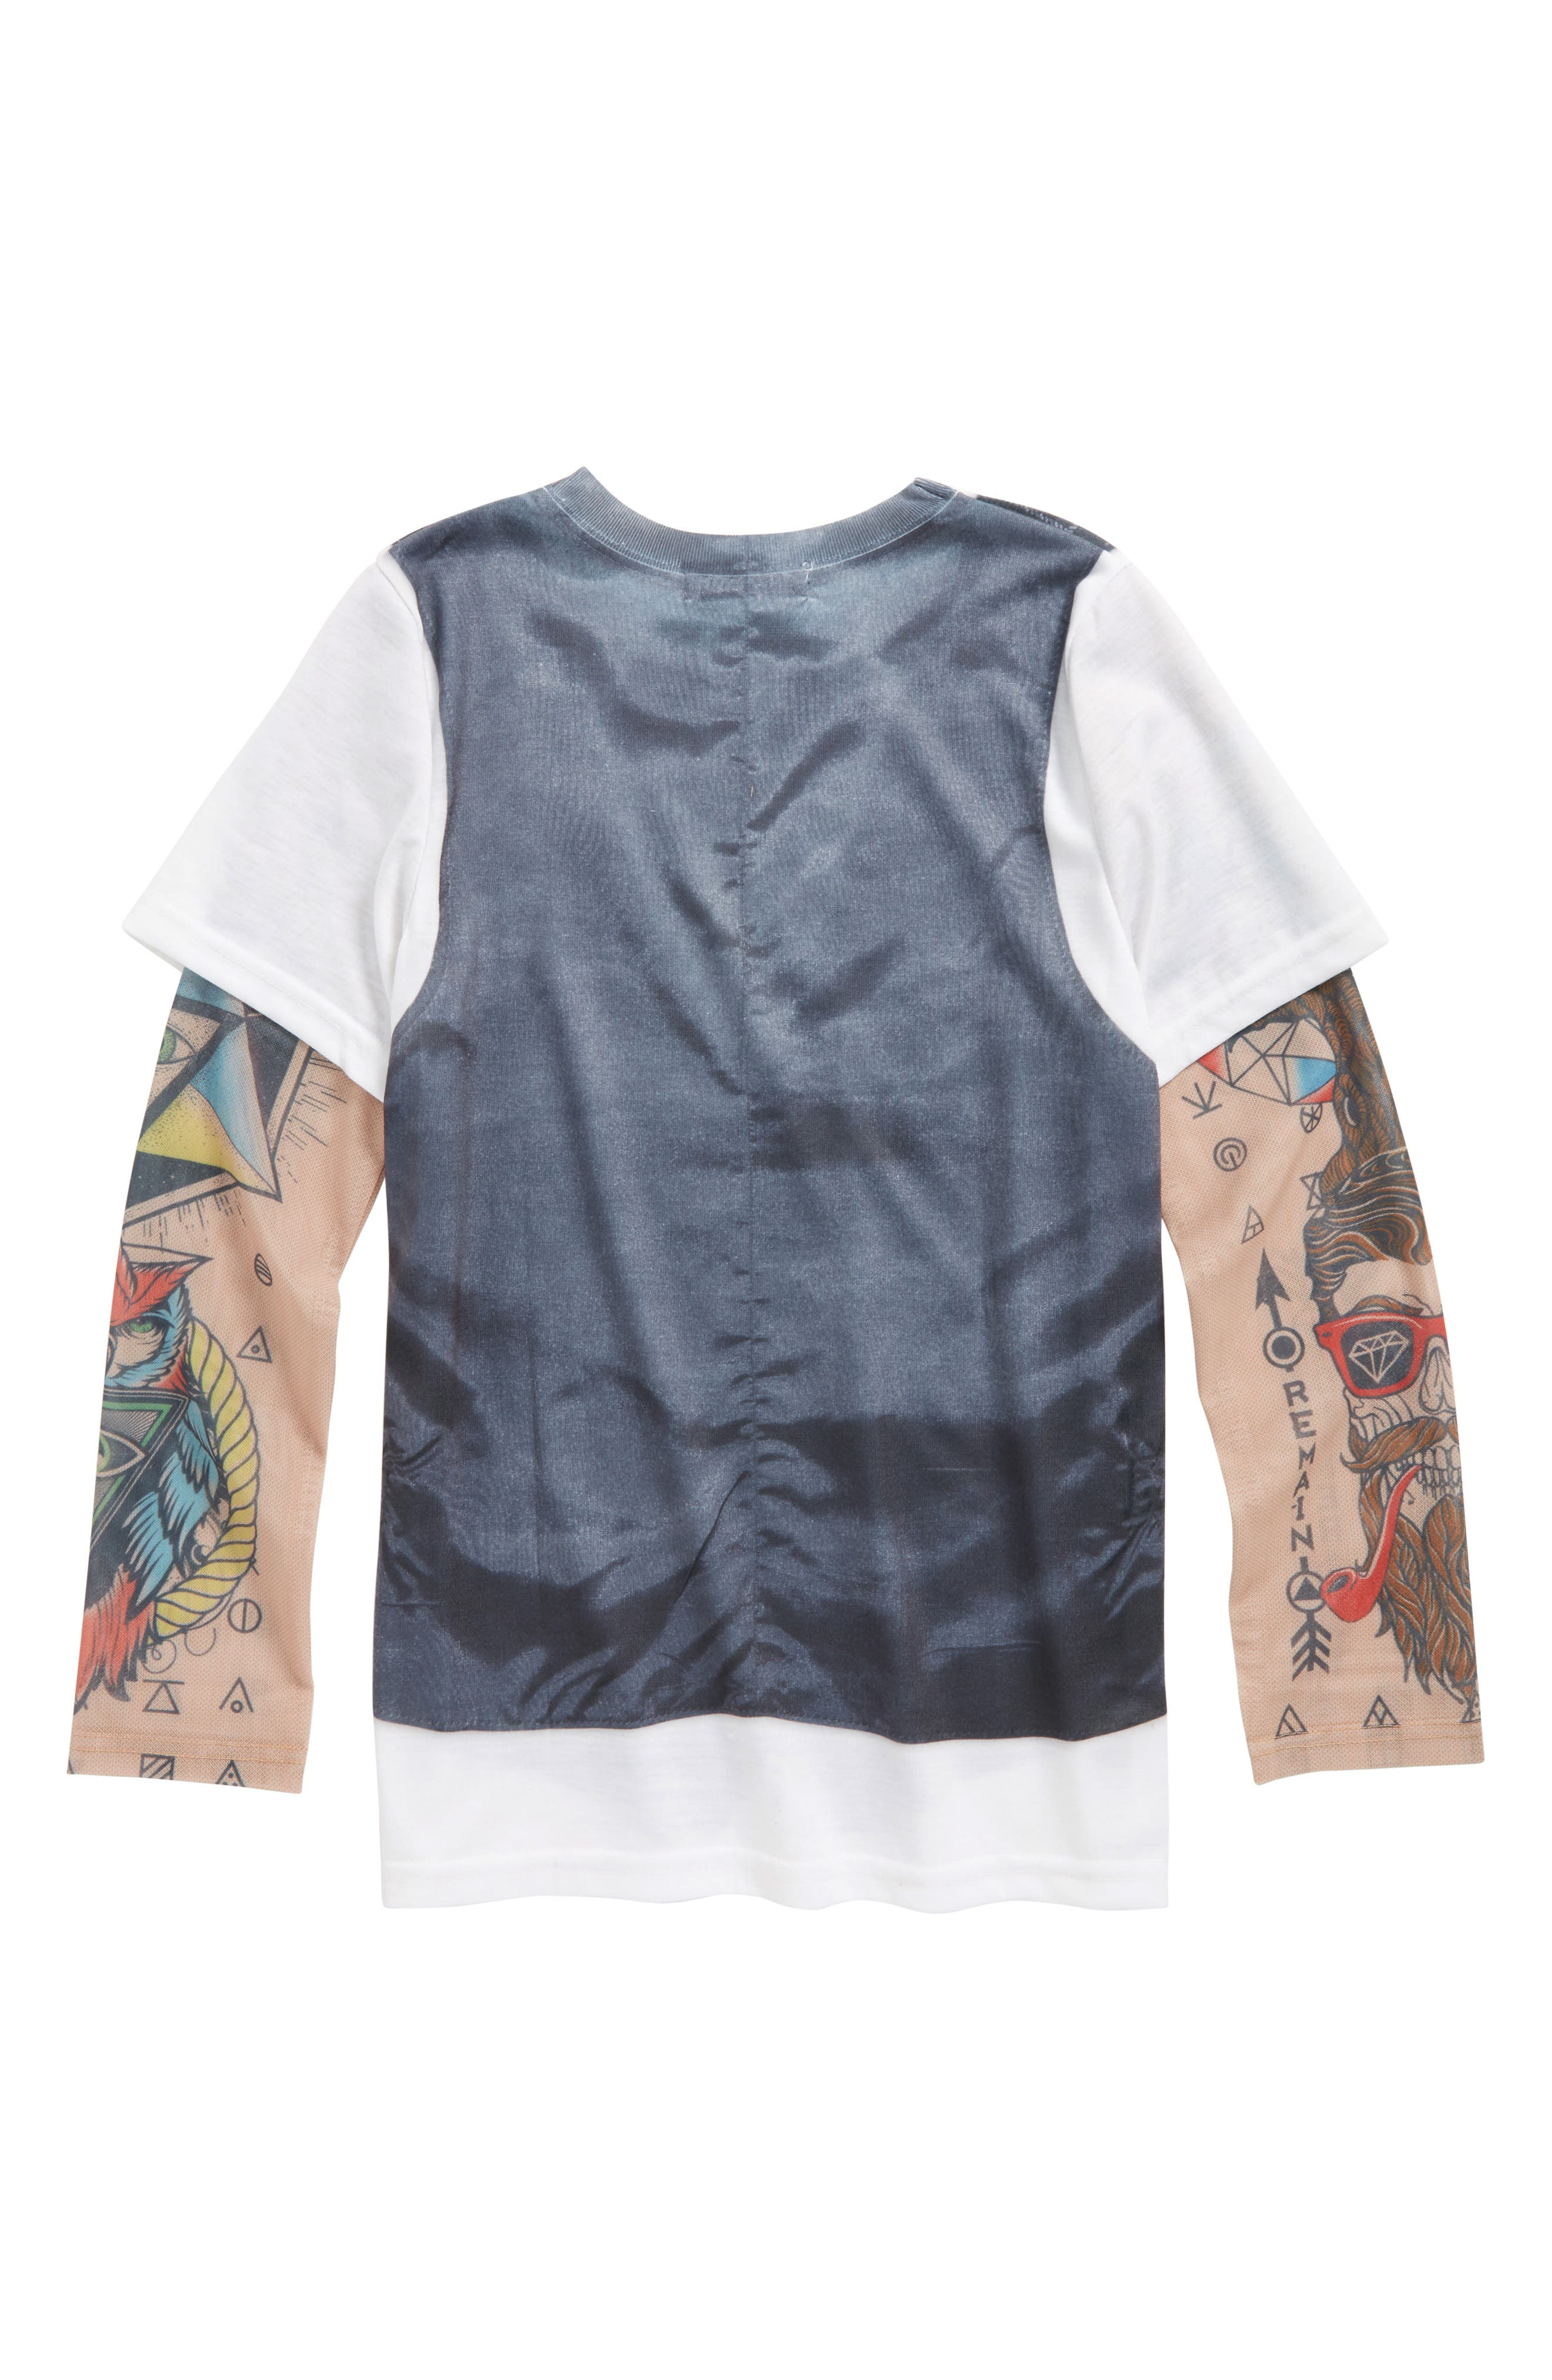 Hipster Vest & Bow Tie T-Shirt with Tattoo Sleeves,                             Alternate thumbnail 3, color,                             Grey